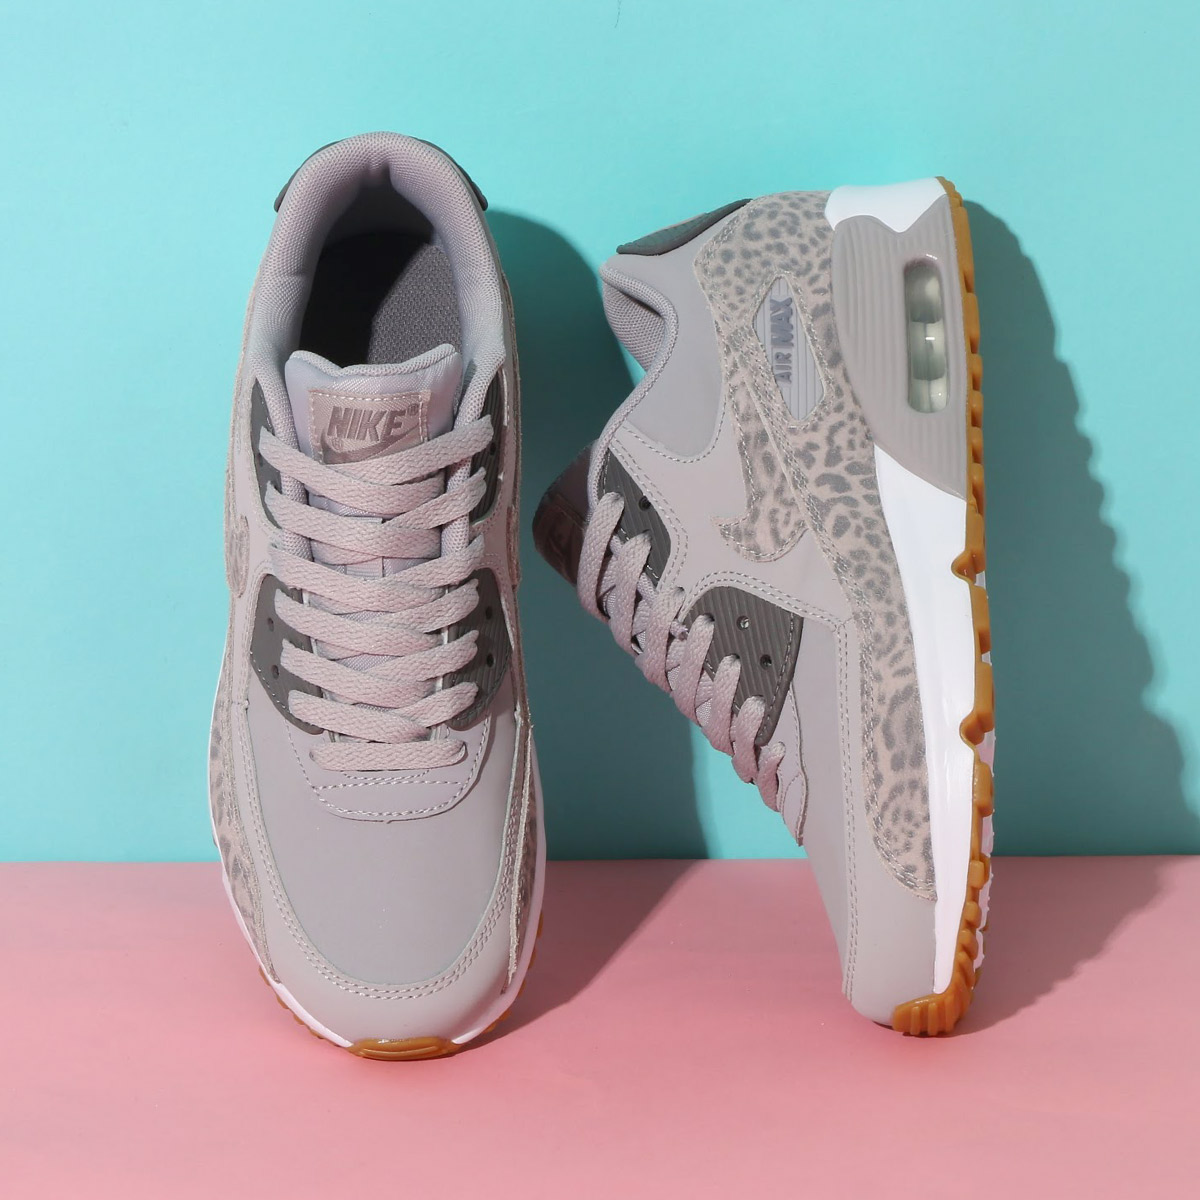 NIKE AIR MAX 90 LTR SE GG (Kie Ney AMAX 90 leather SE GS) (ATMOSPHERE GREY/GUNSMOKE-WHITE) 18SP-I